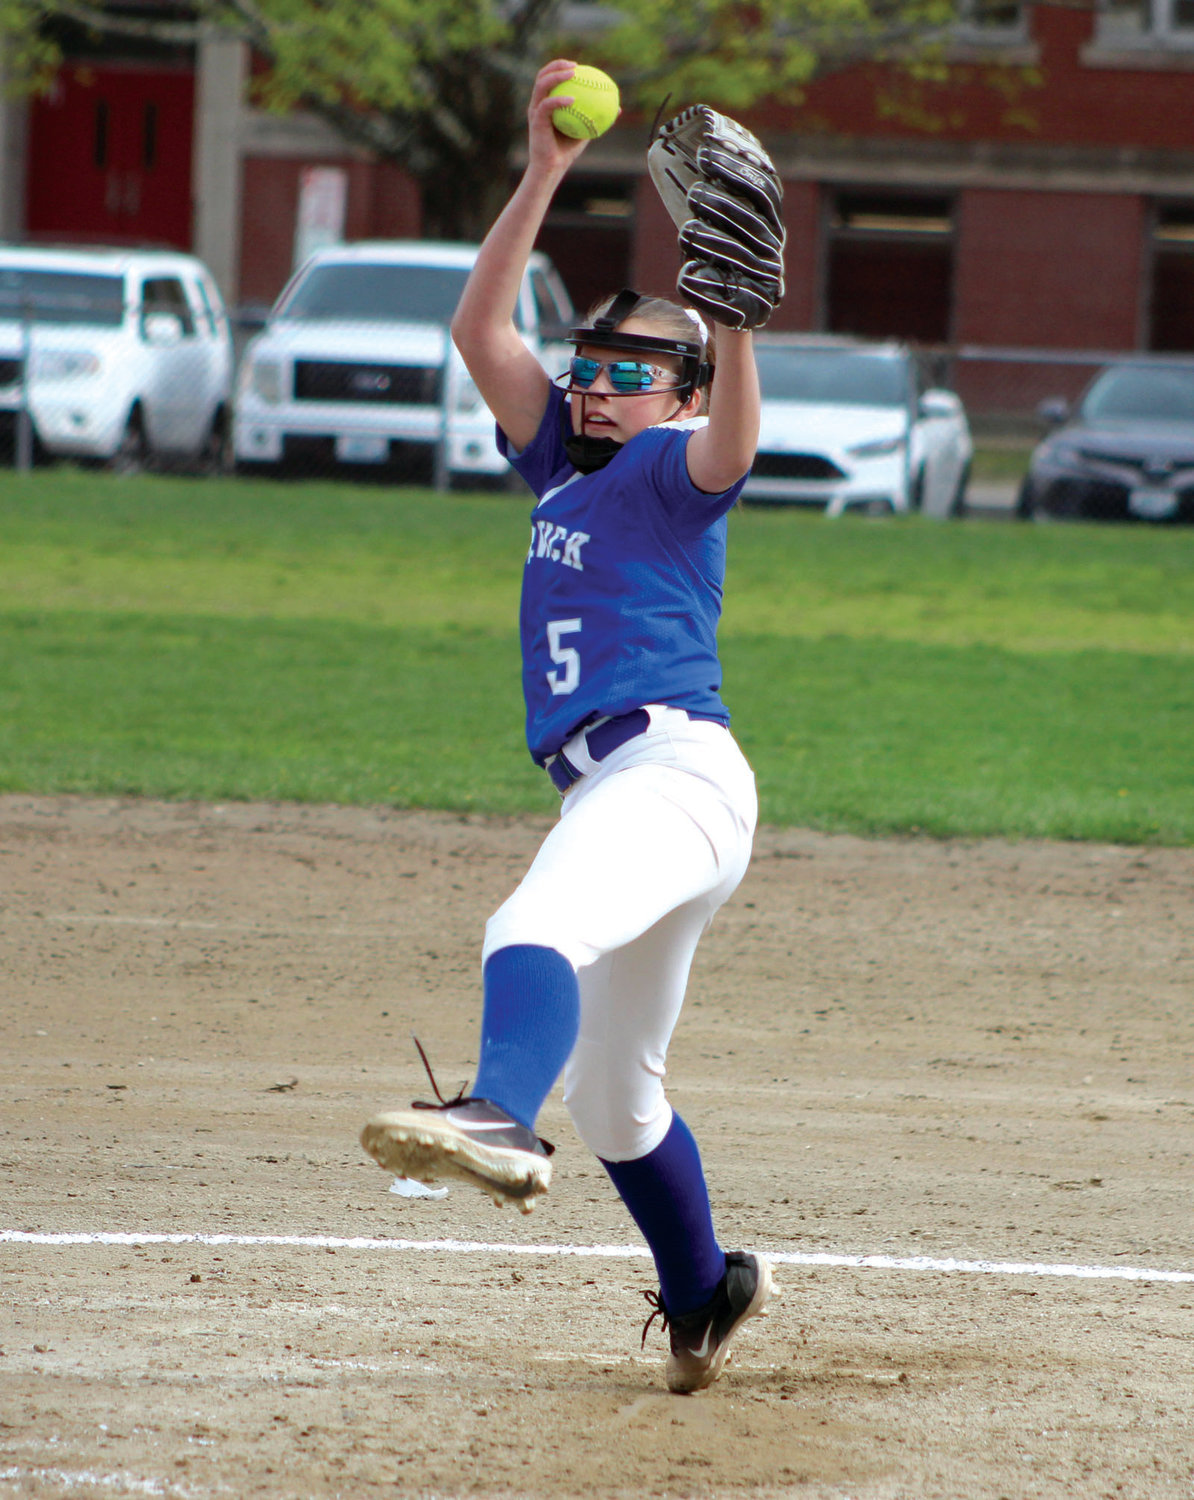 IN THE CIRCLE: Vets' Alyssa Twomey delivers a pitch against Bain.